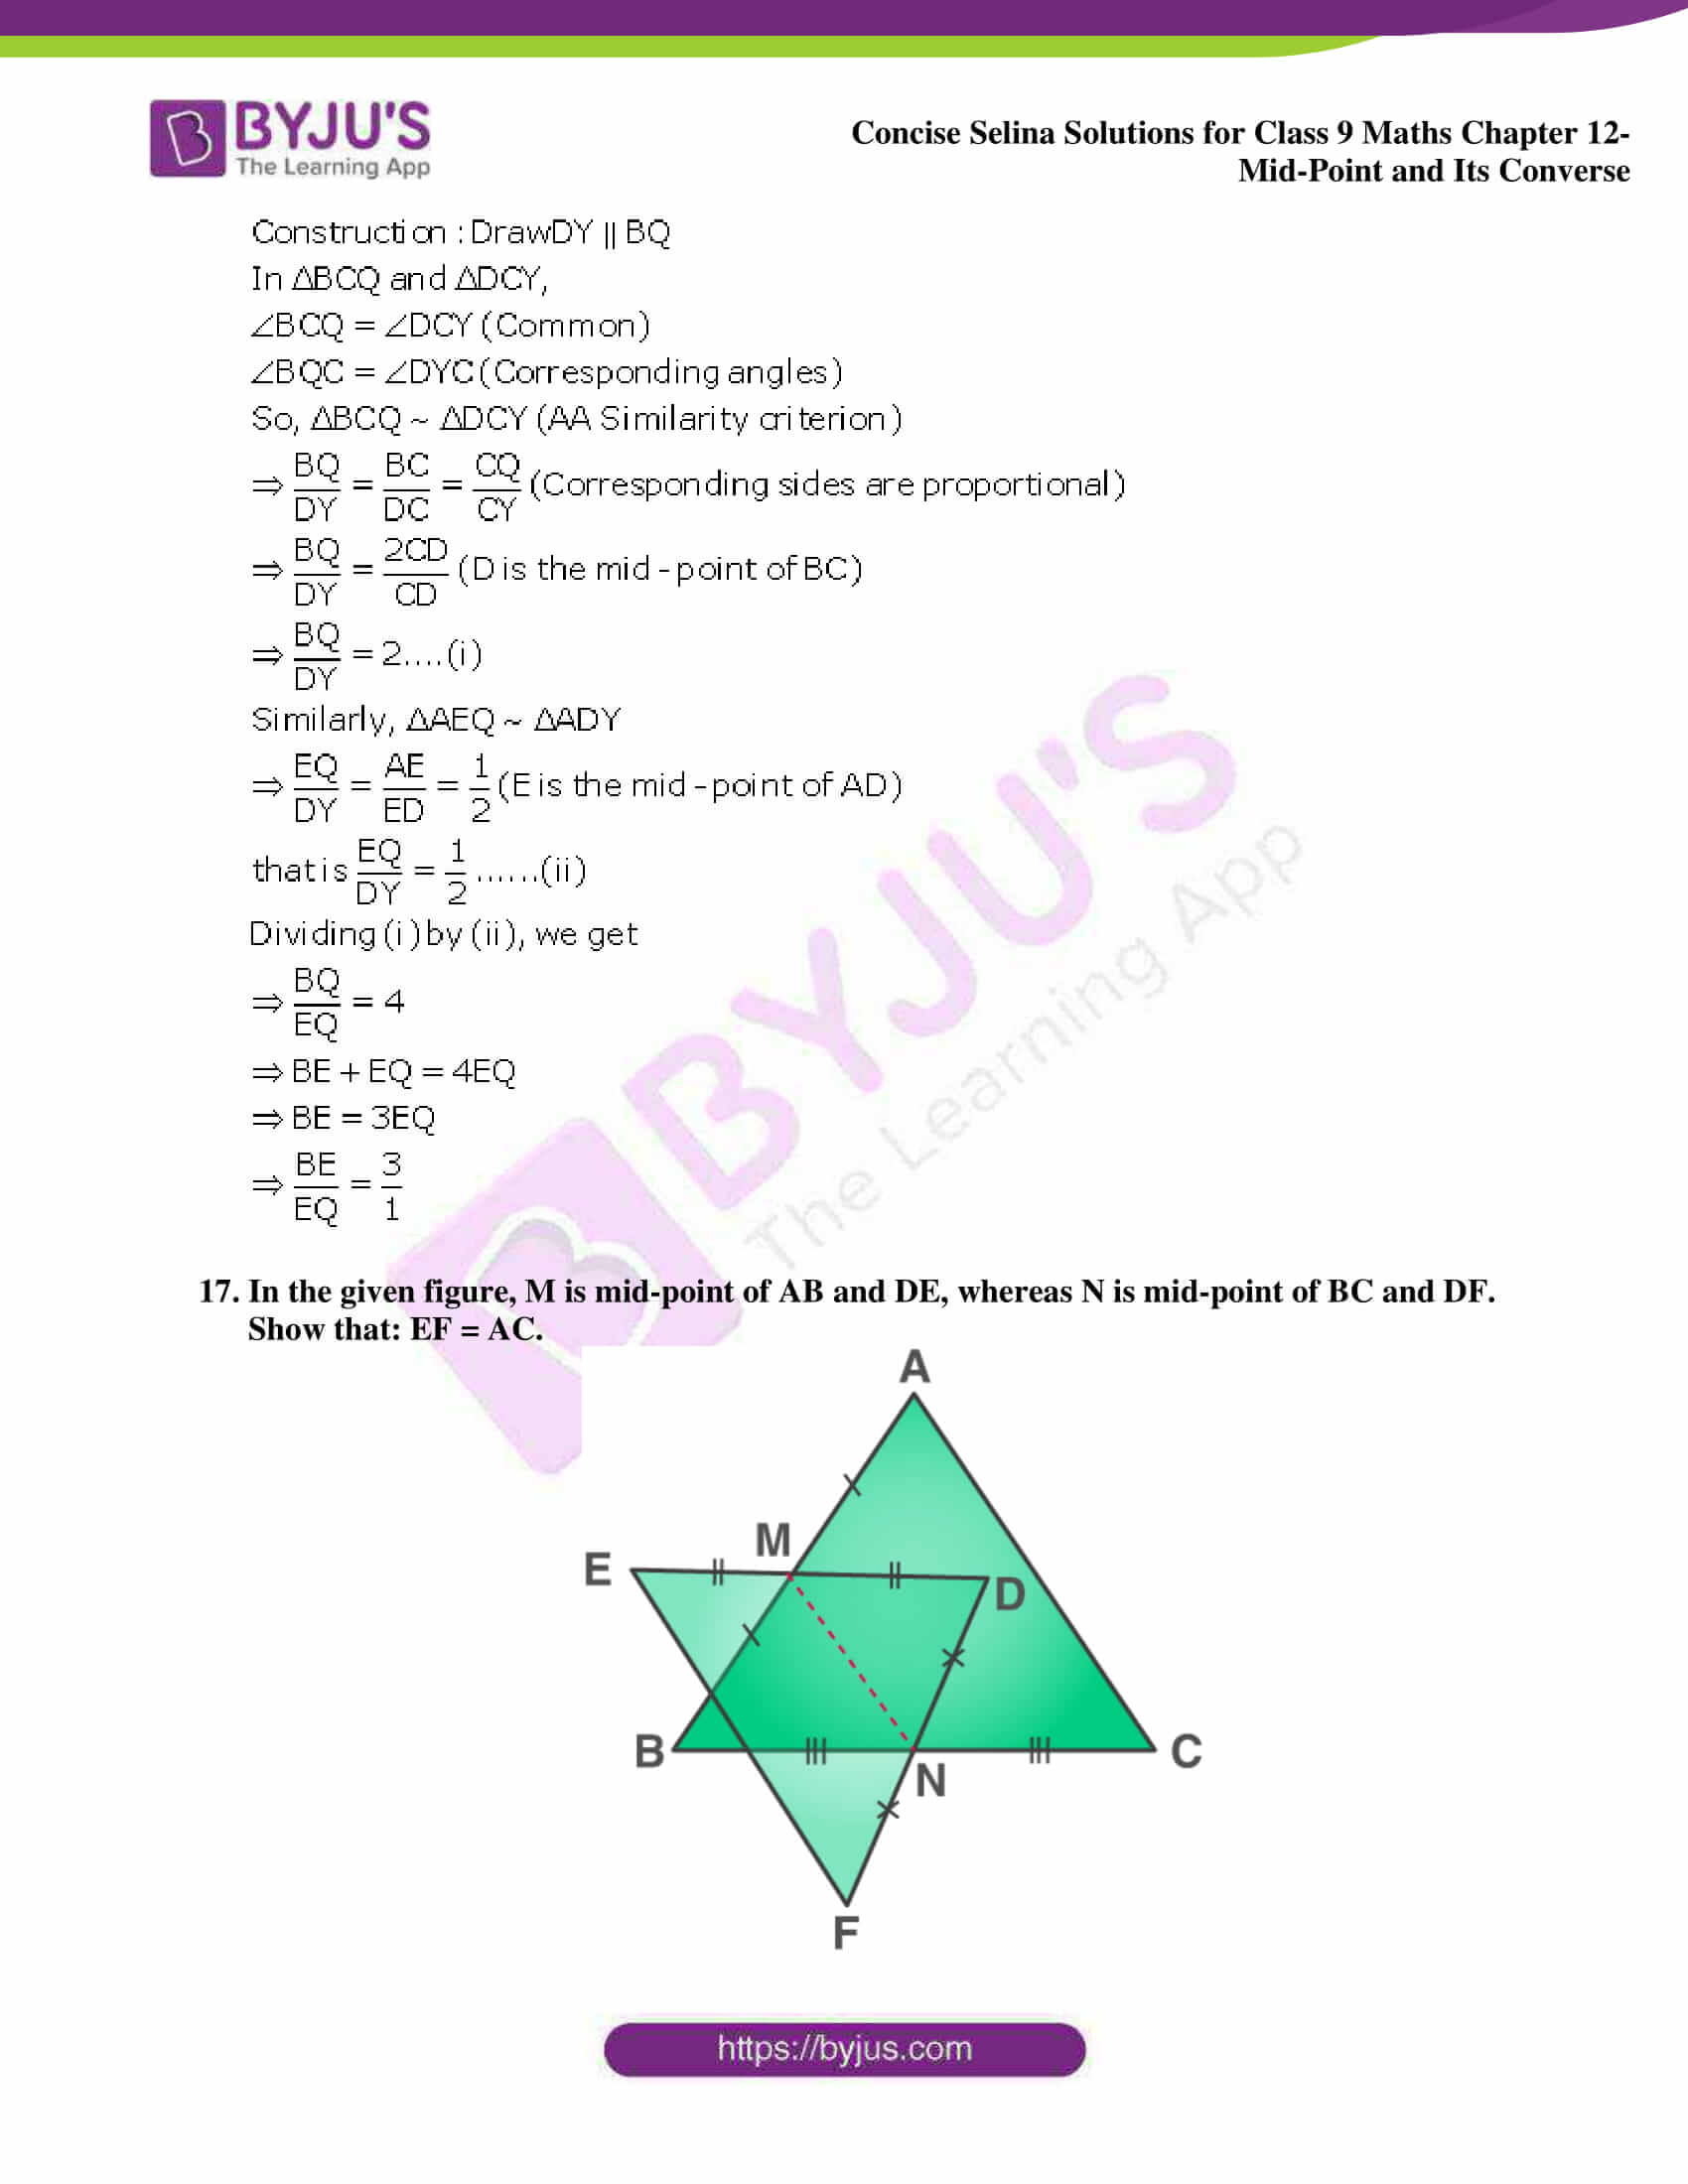 selina Solutions for Class 9 Maths Chapter 12 11